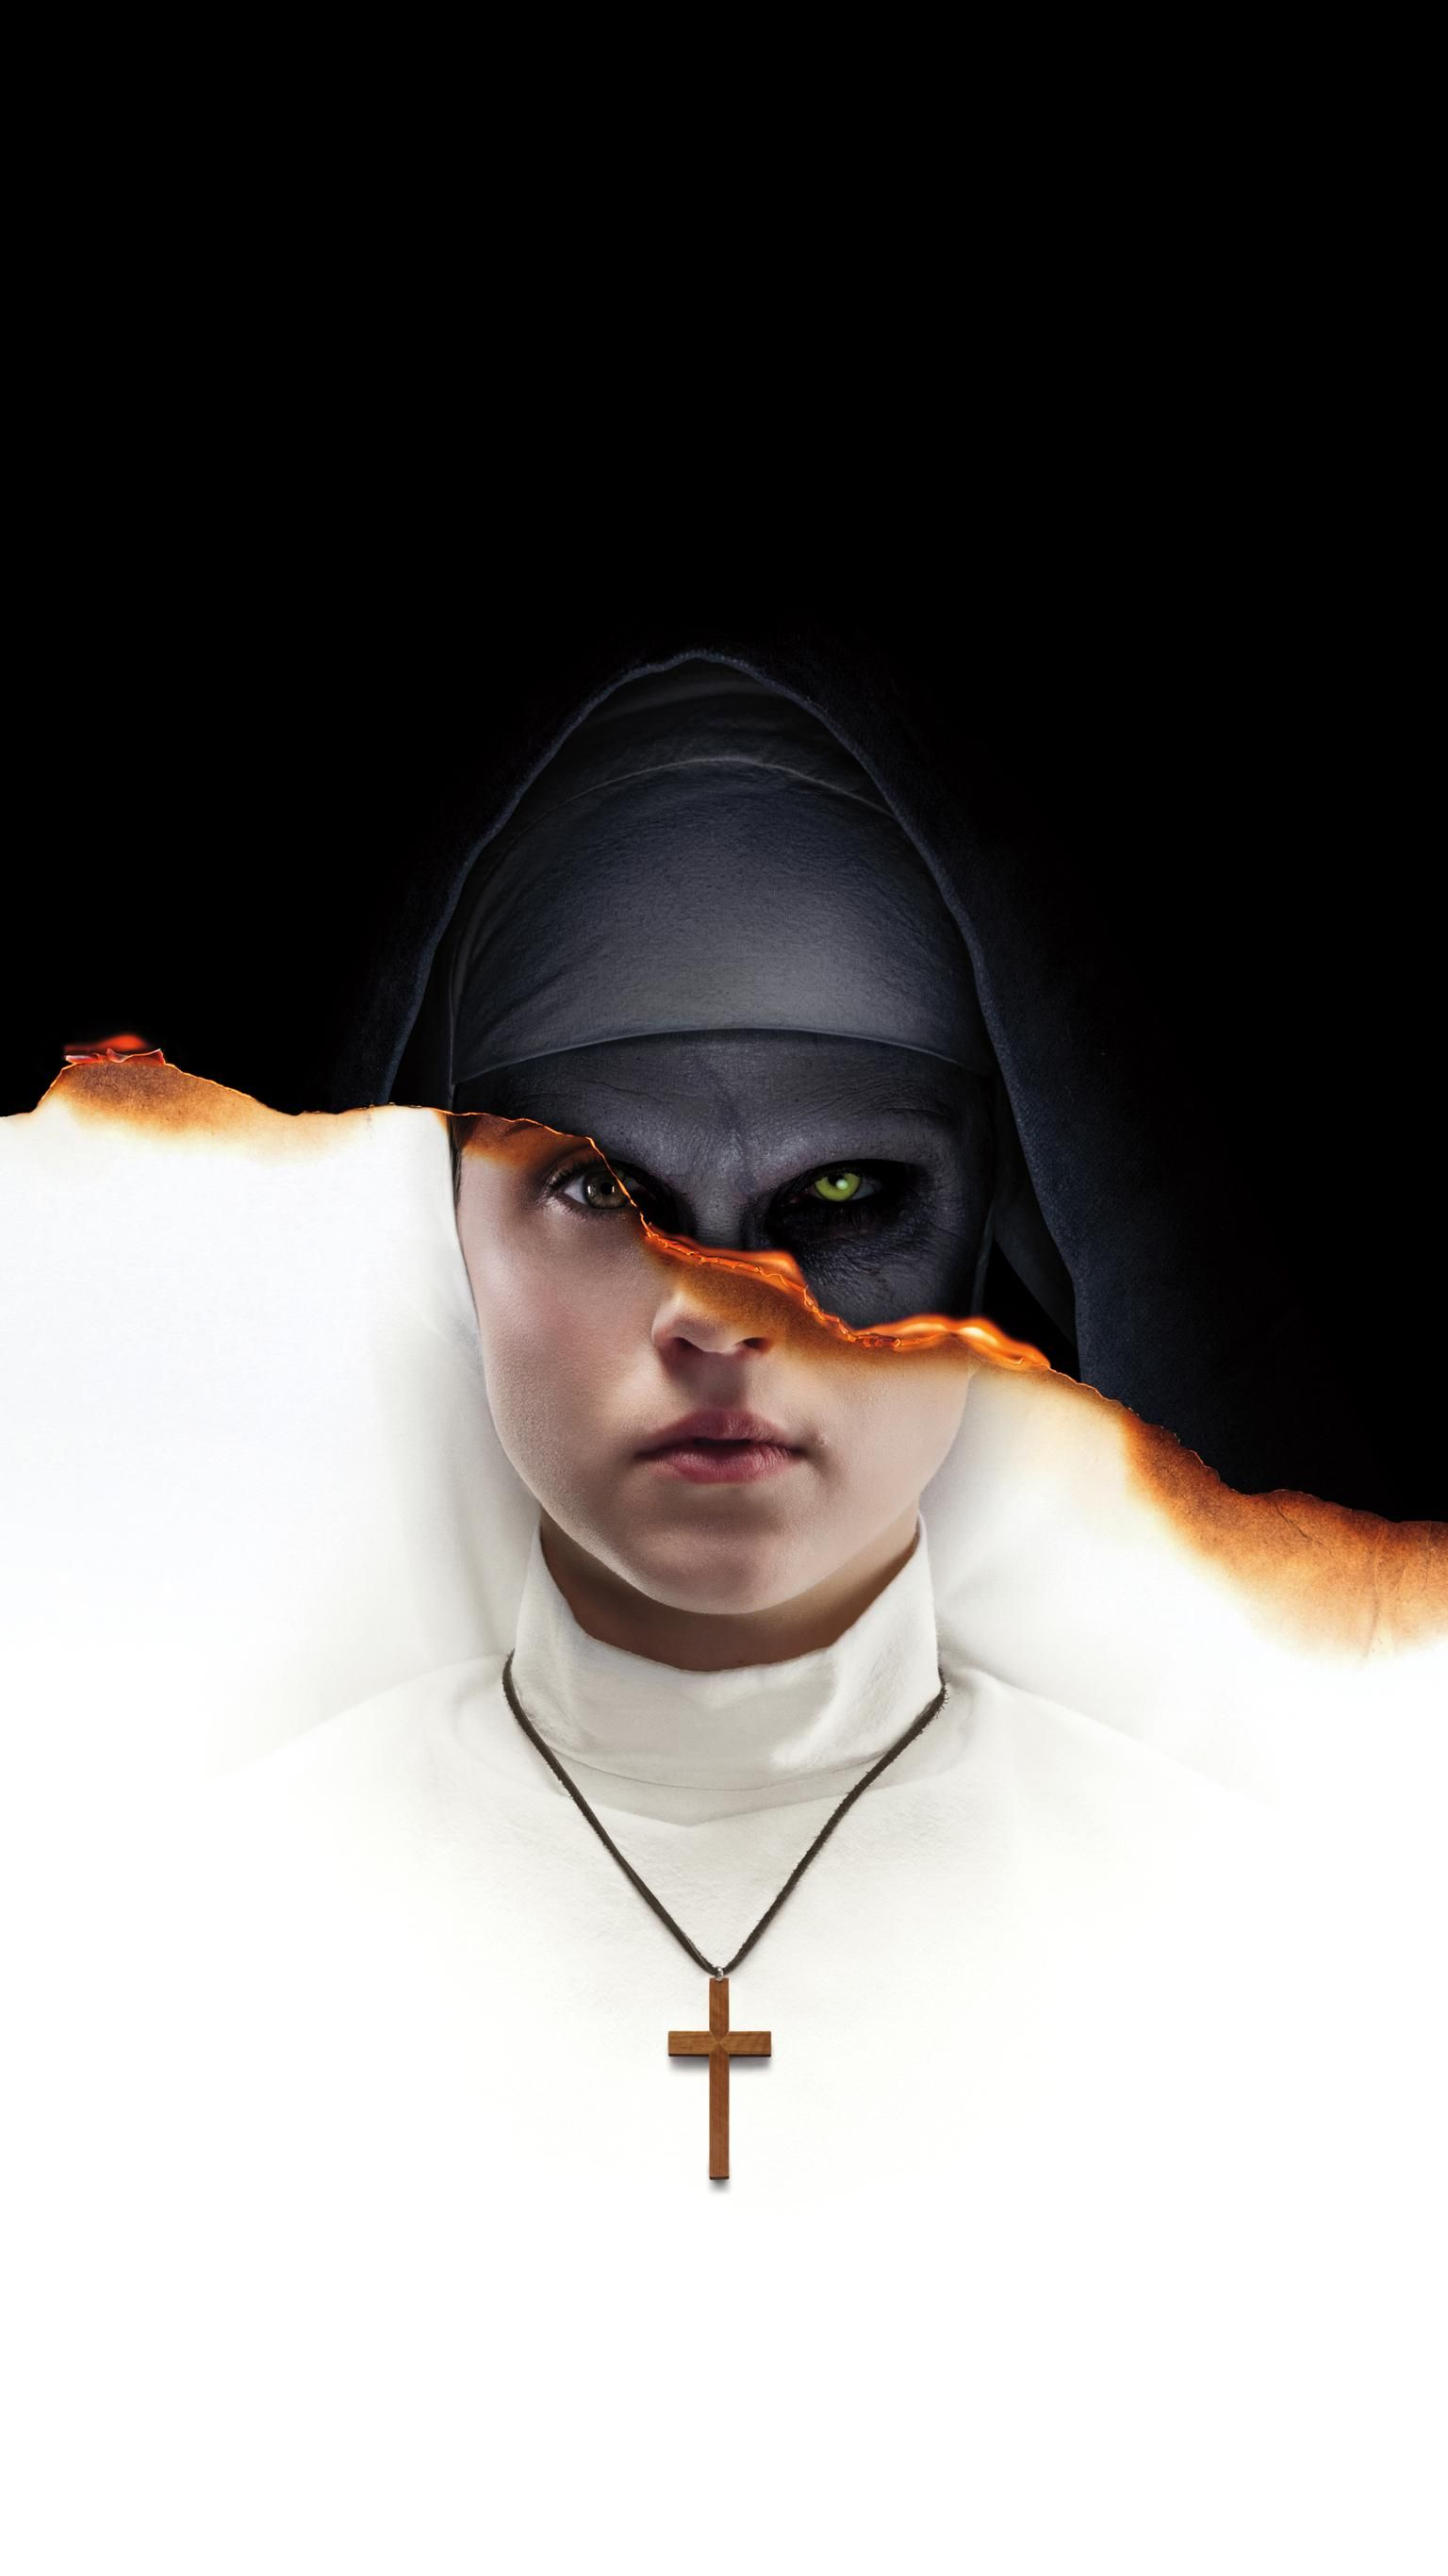 The Nun 2018 Phone Wallpaper In 2019 Movie Wallpapers